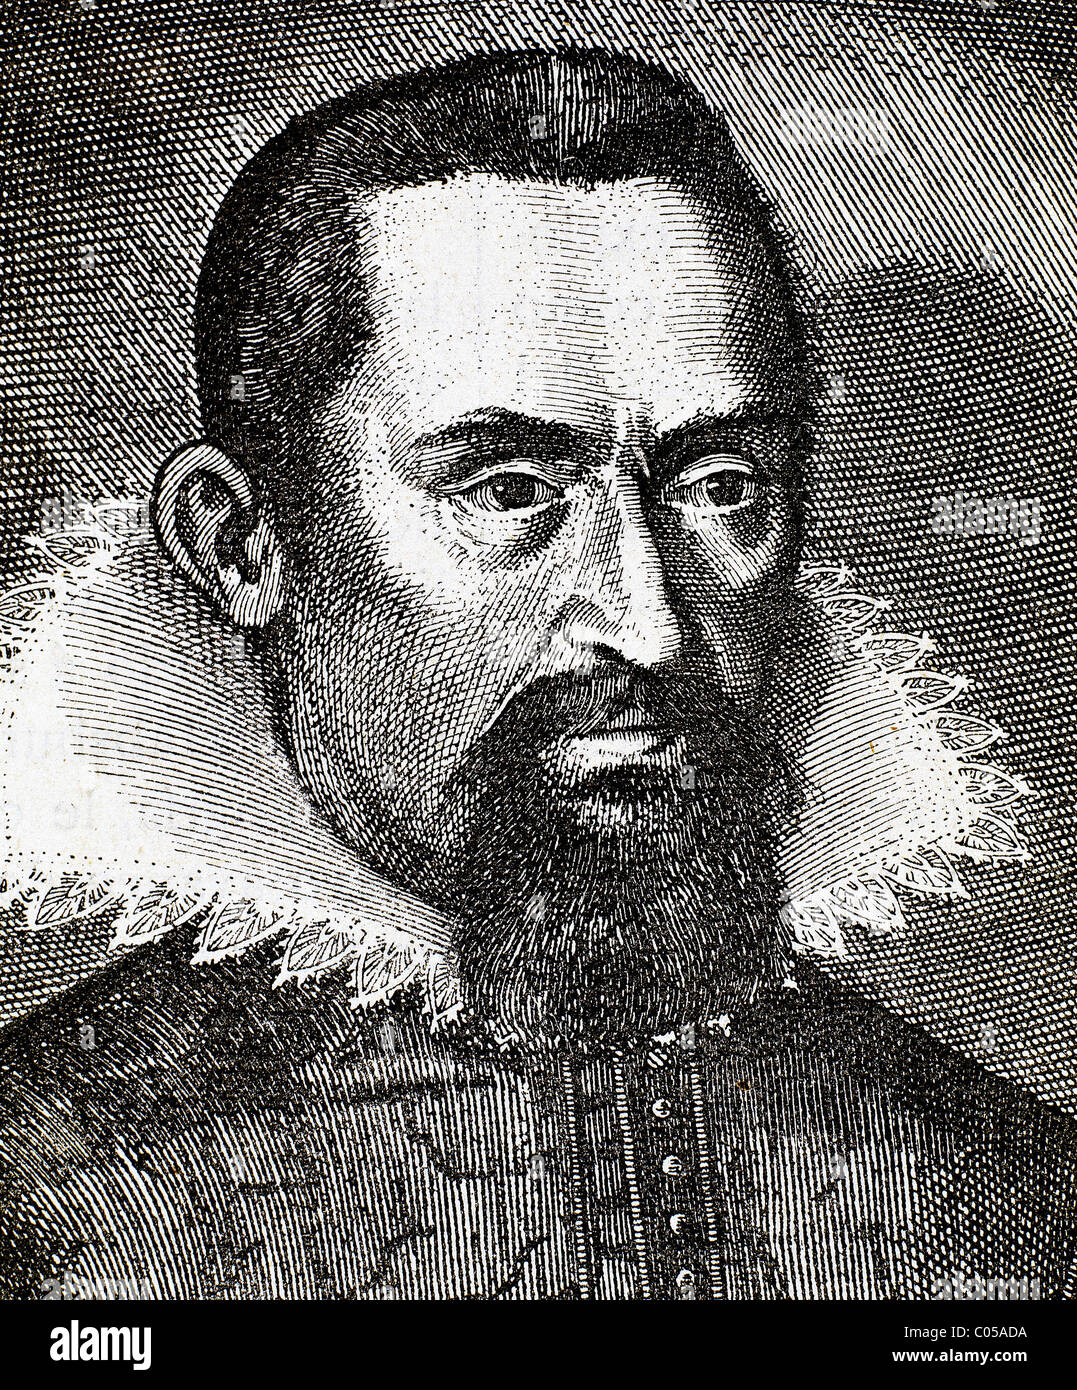 Kepler, Johannes (1571-1630) German mathematician and astronomer. Considered the founder of modern astronomy. Engraving. - Stock Image